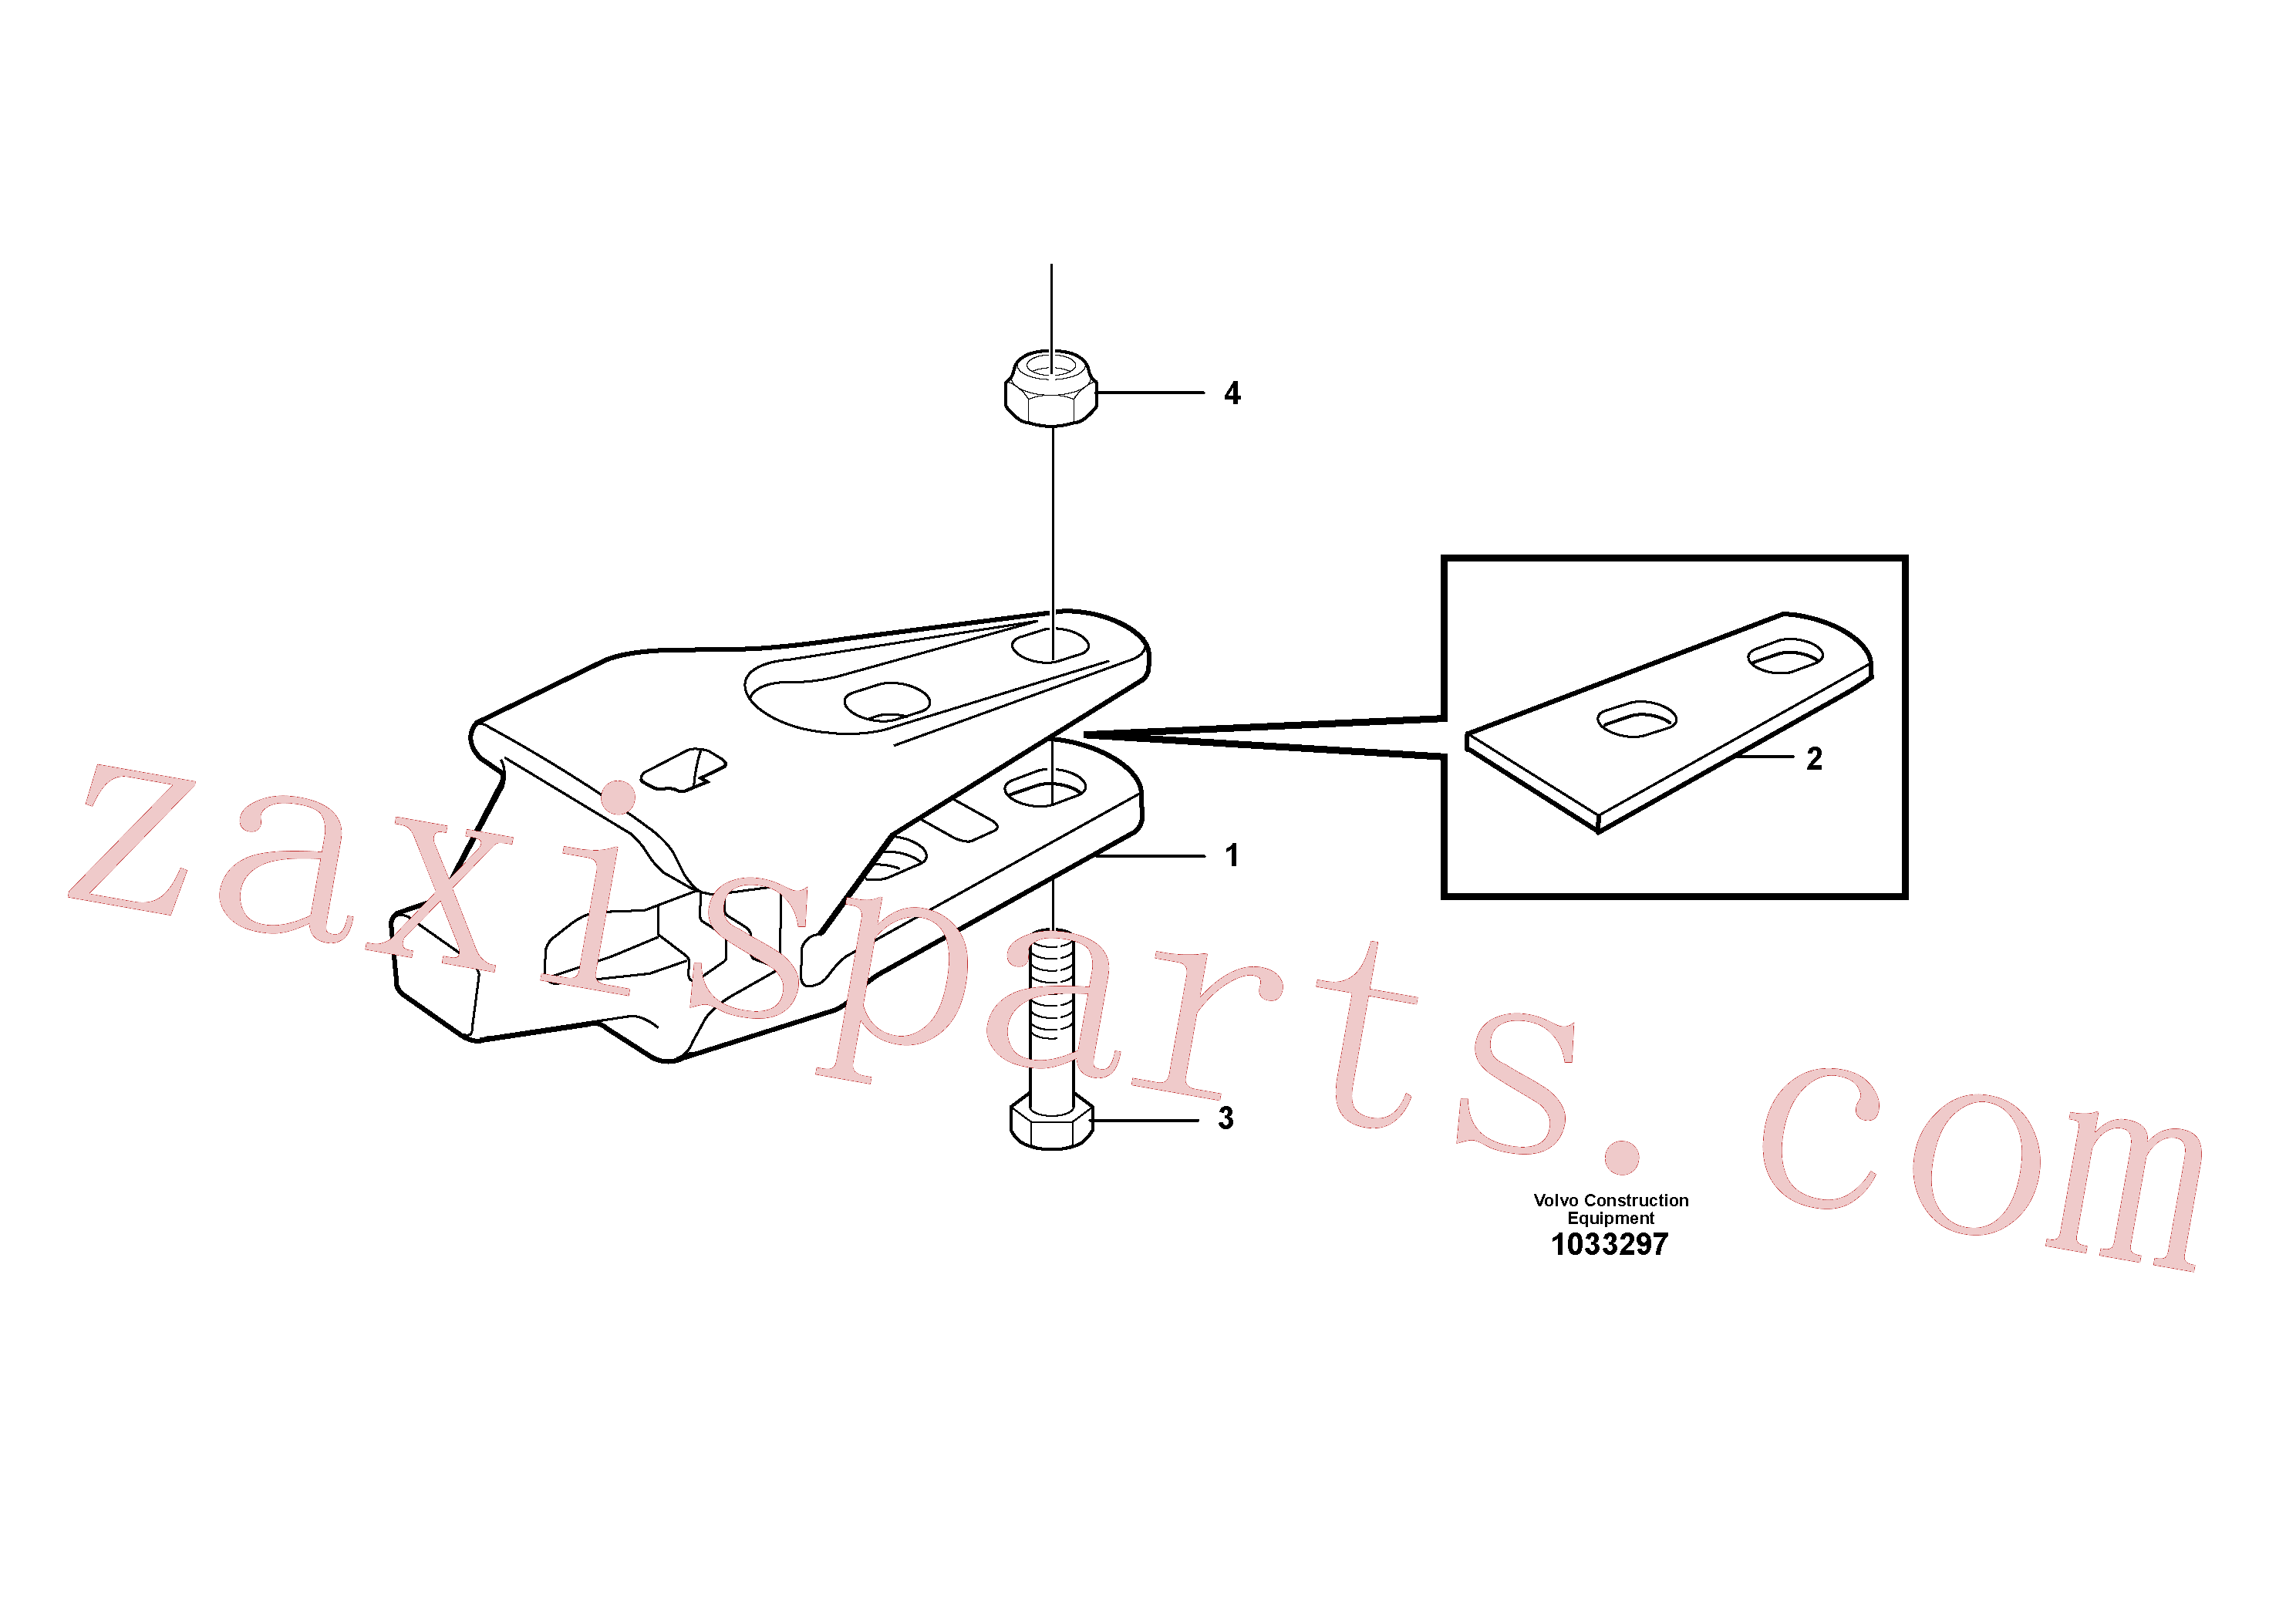 VOE978951 for Volvo Adapter kit(1033297 assembly)